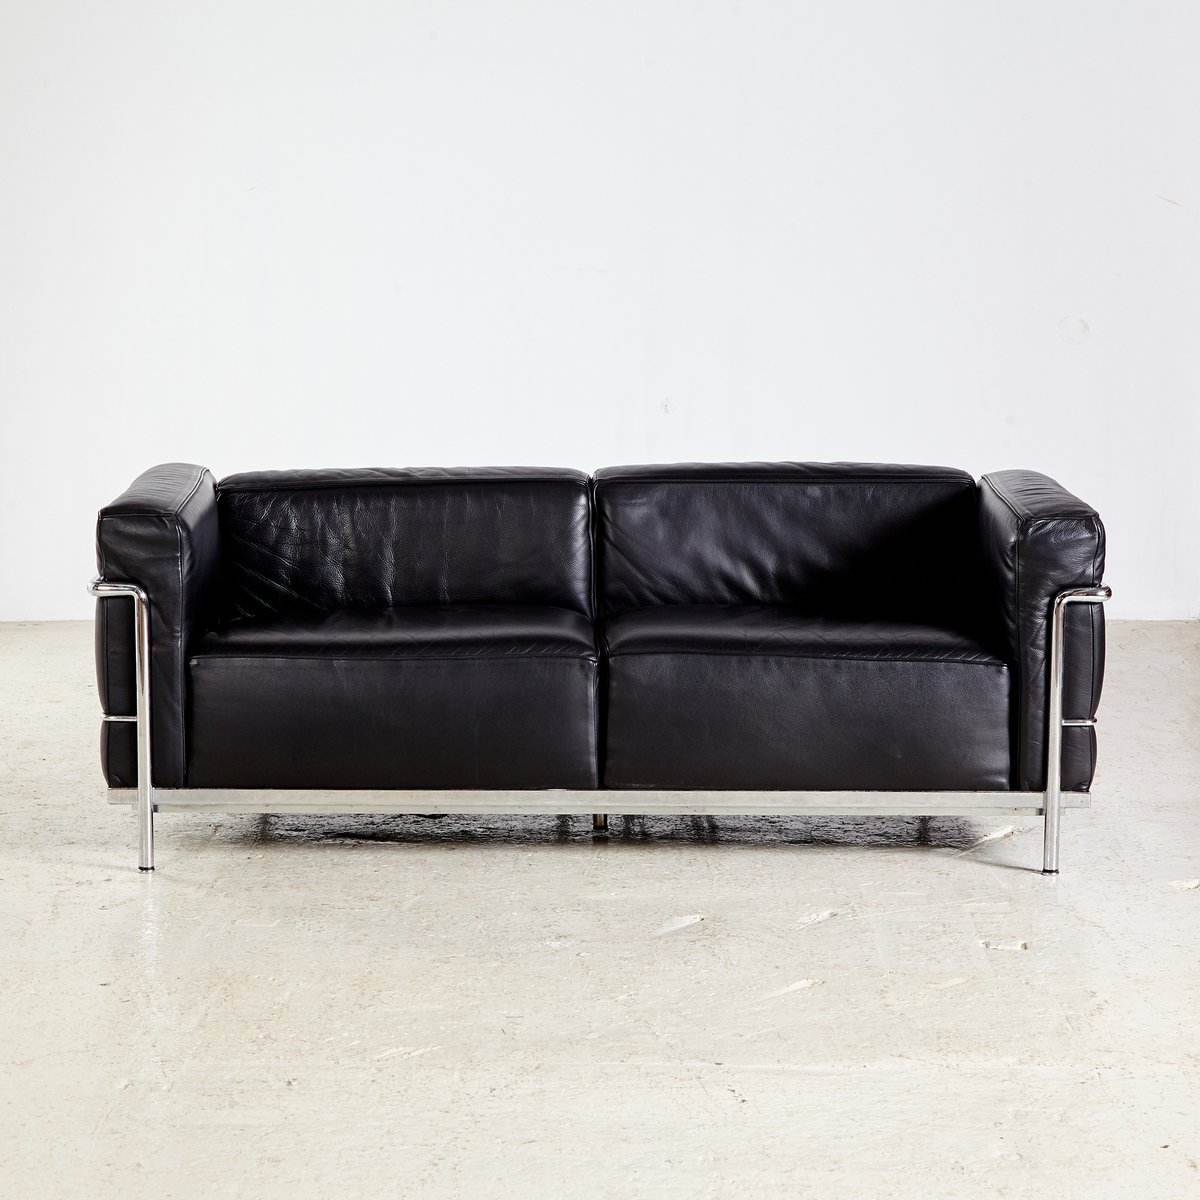 lc3 sofa by le corbusier pierre jeanneret charlotte. Black Bedroom Furniture Sets. Home Design Ideas